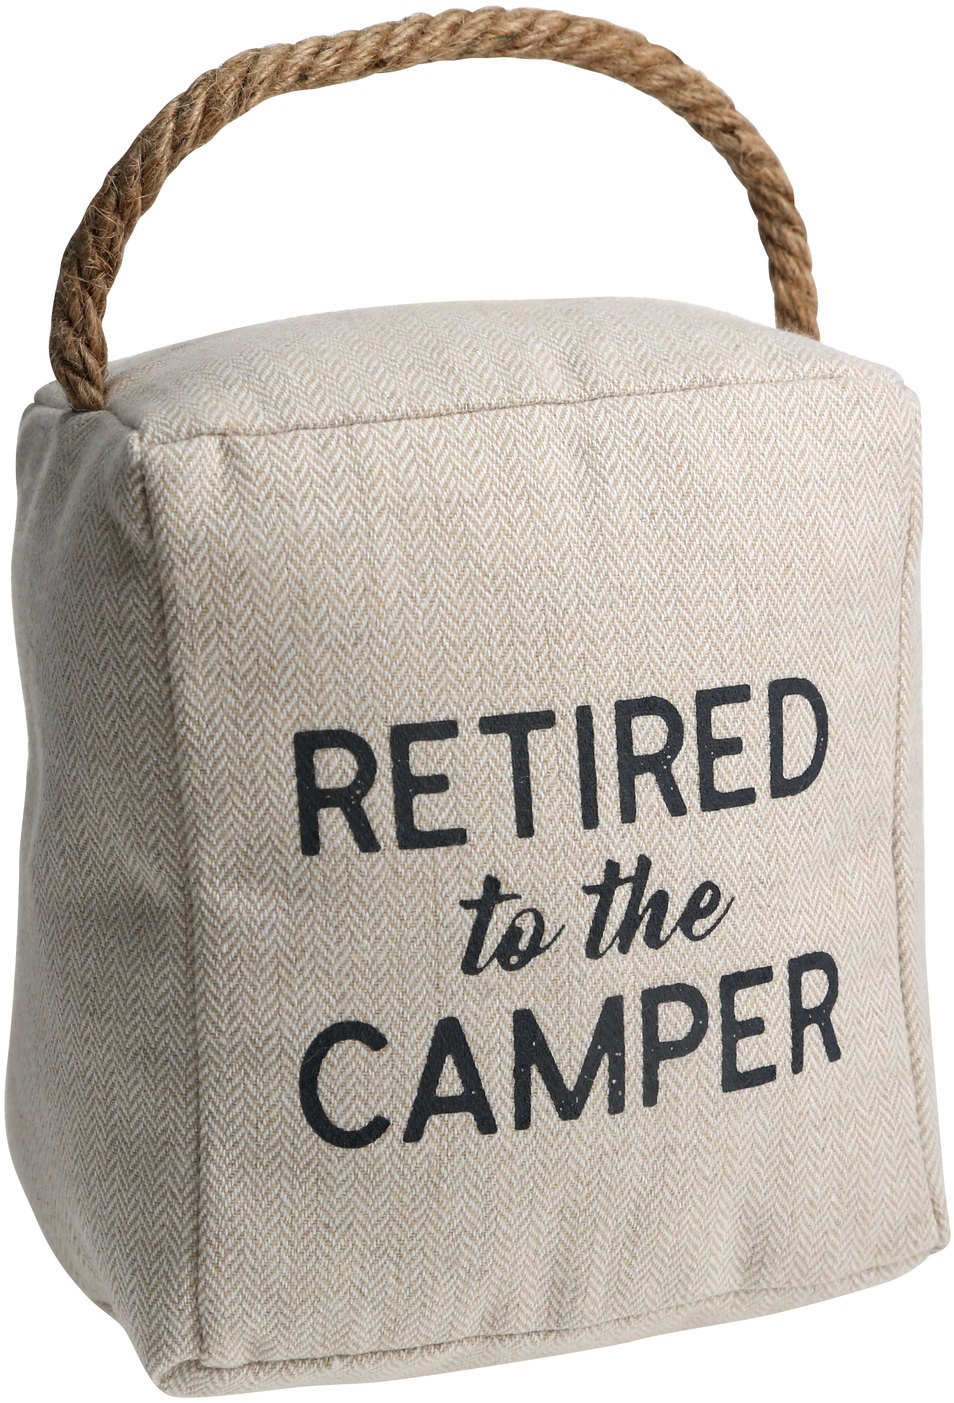 "Camper by Retired Life - Camper - 5"" x 6"" Door Stopper"